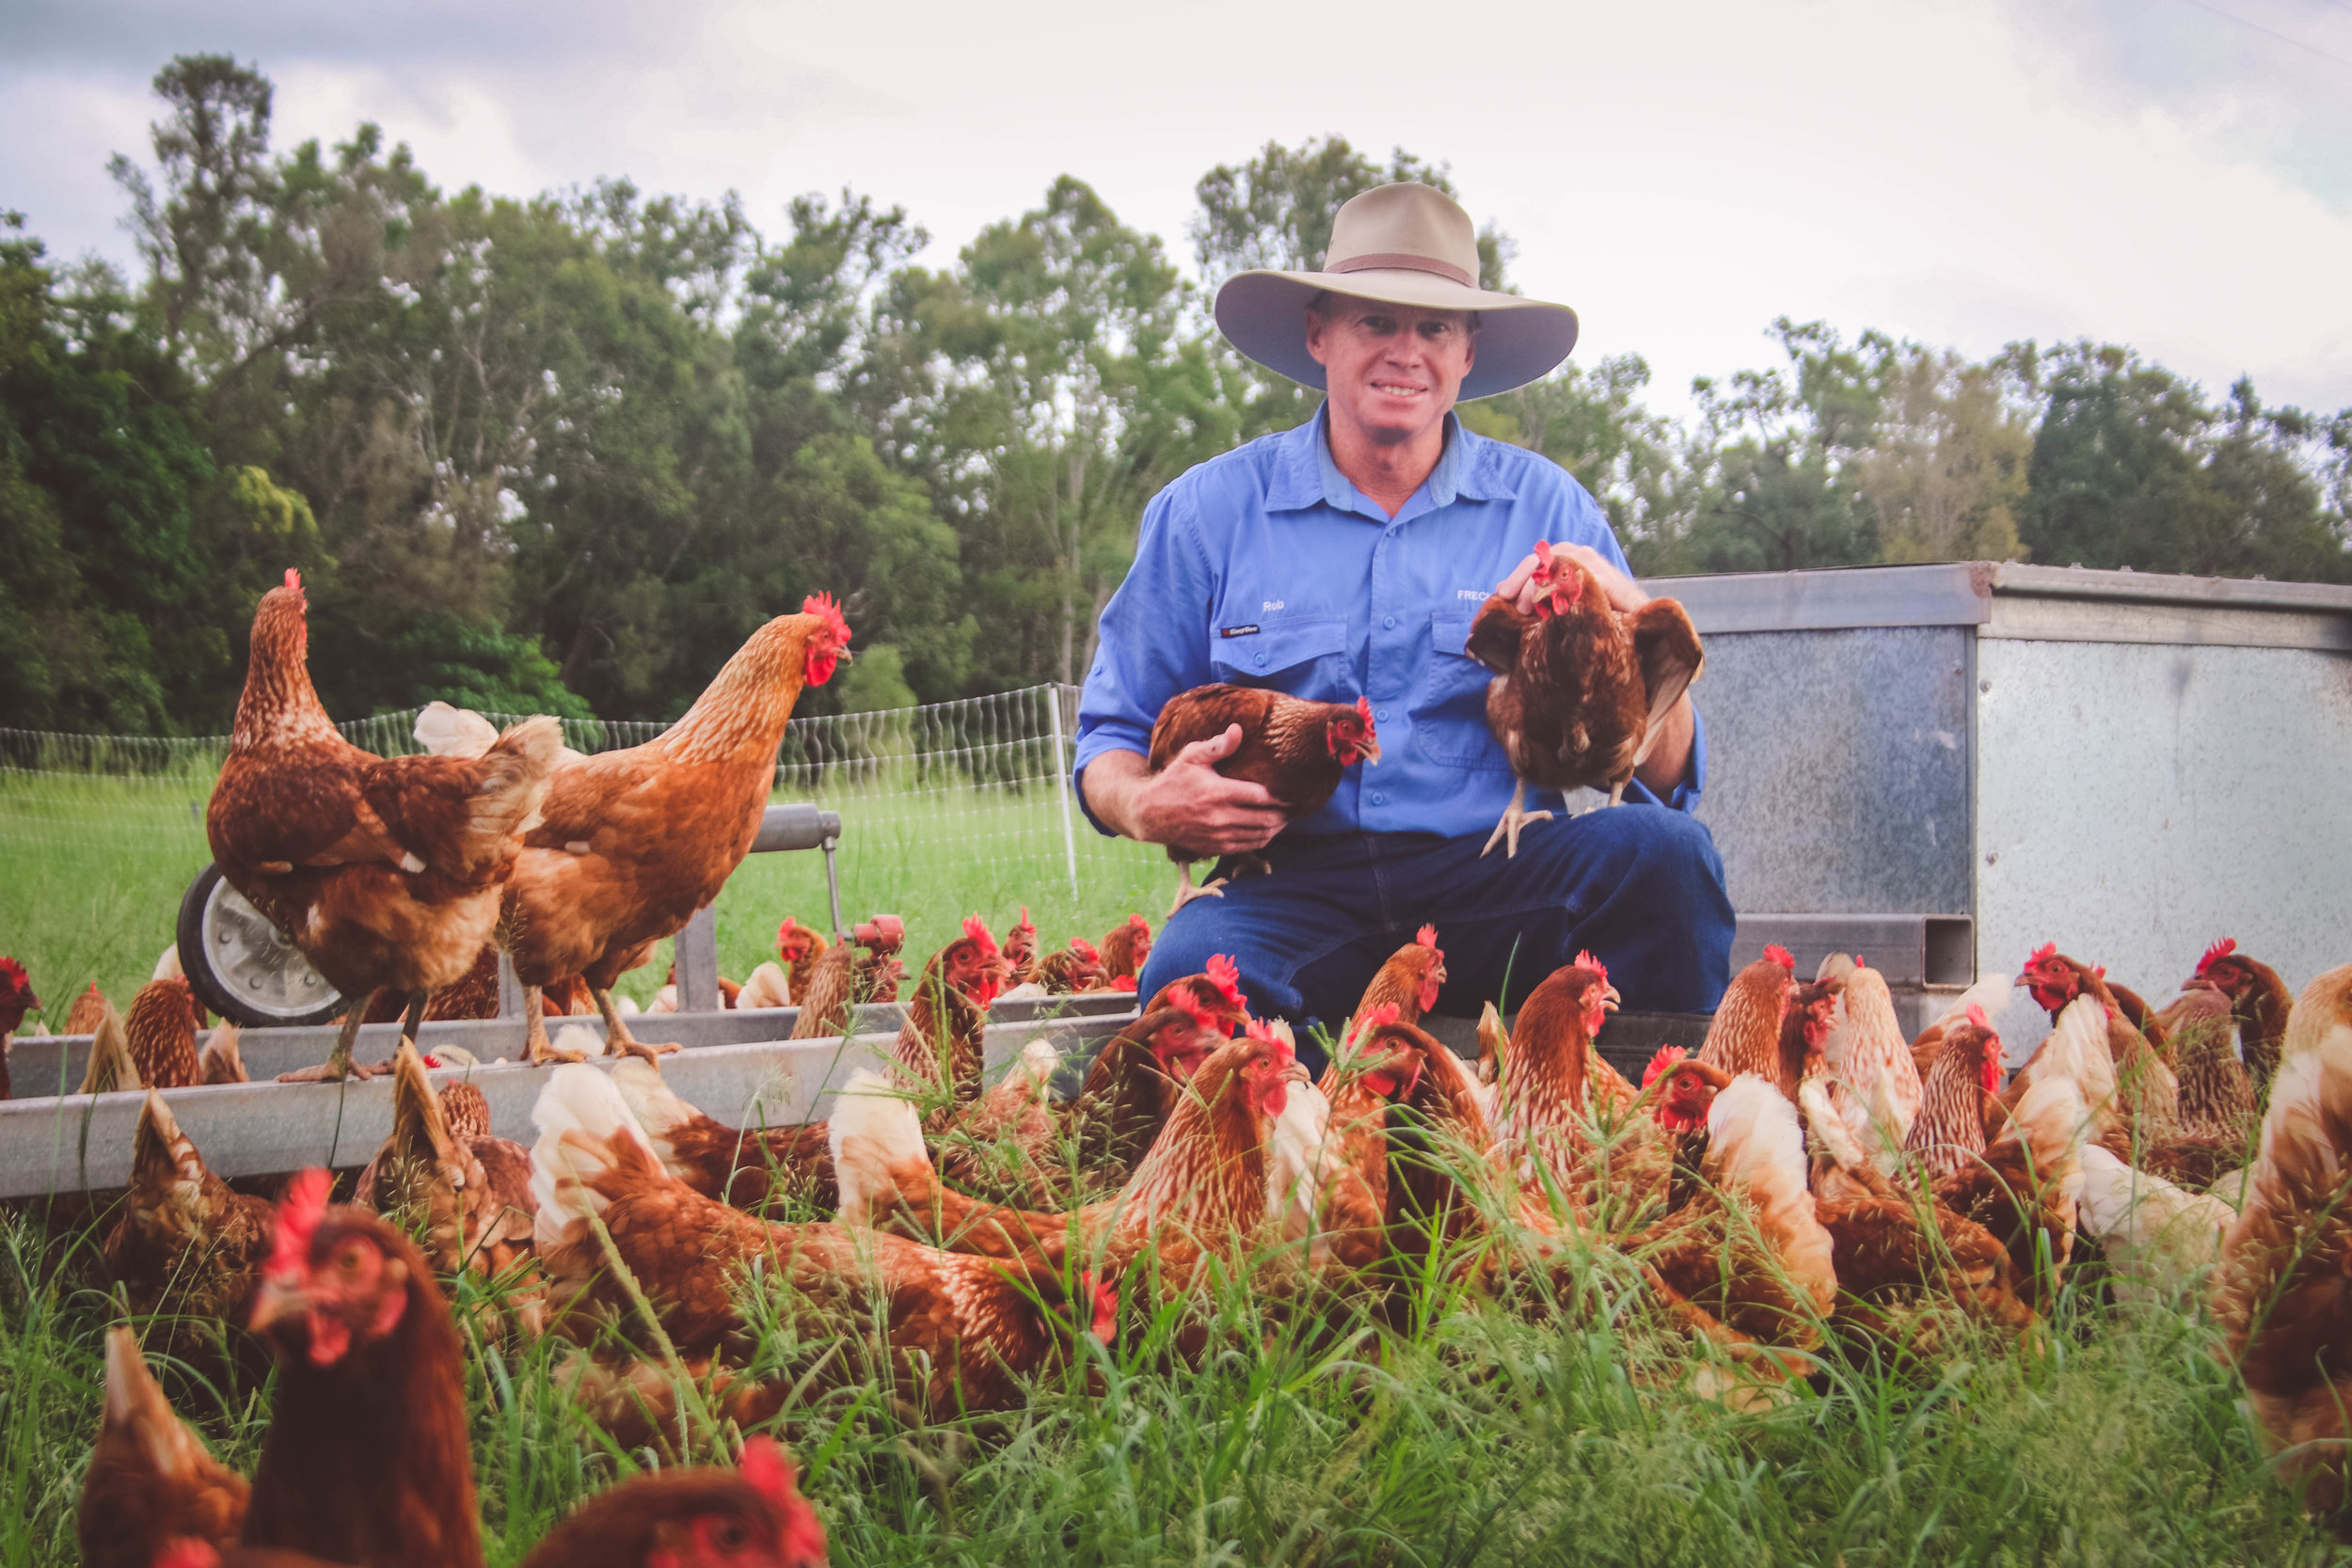 Farmer Rob with his Chickens